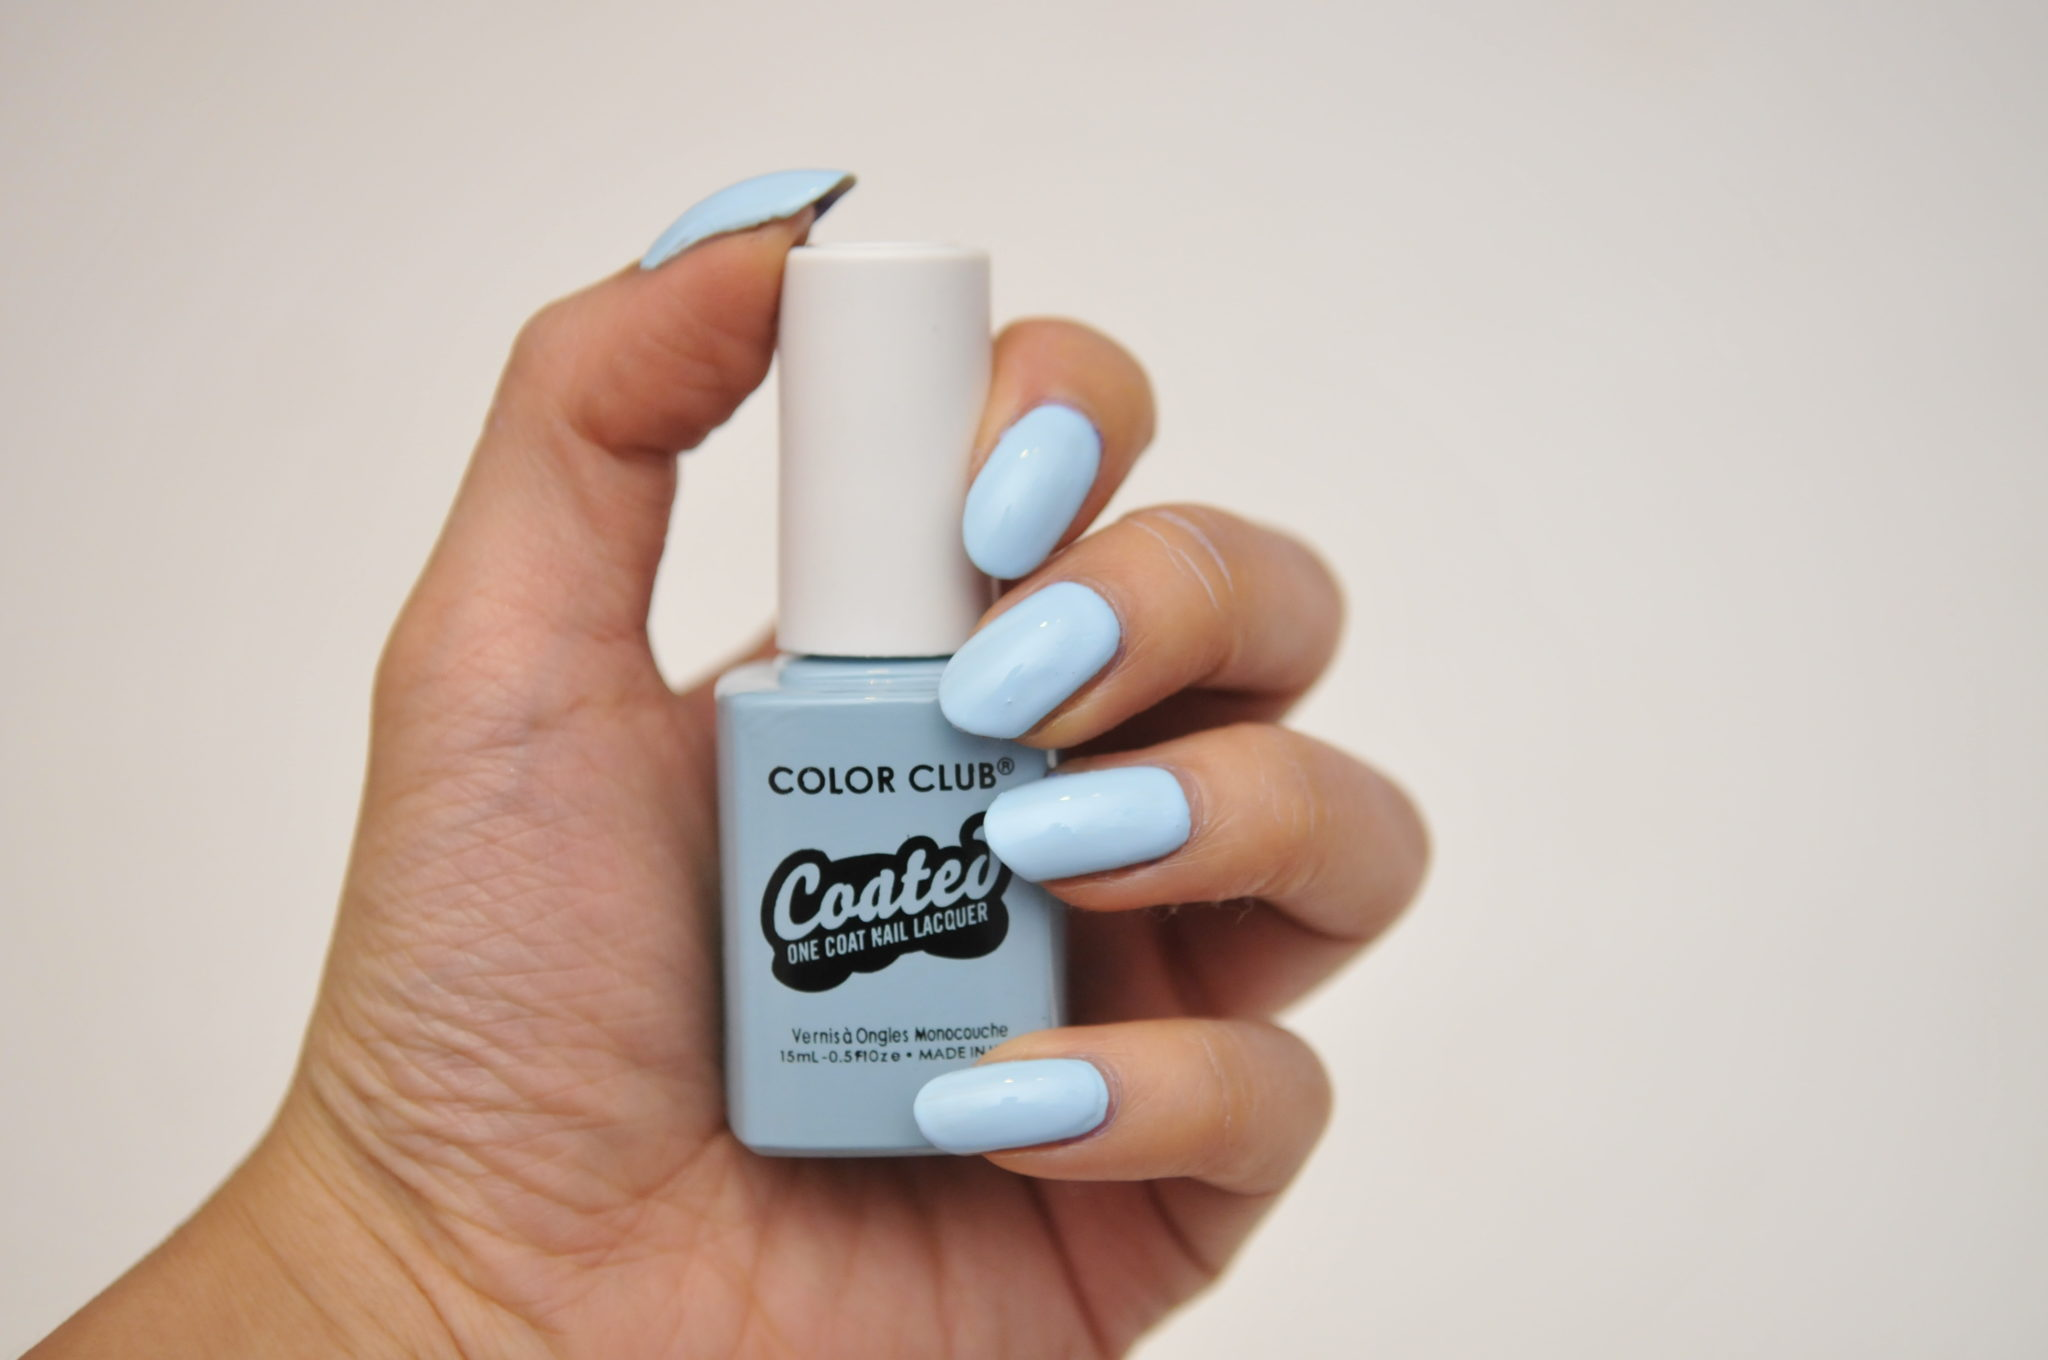 Color Club Coated One Coat Nail Polish Review and Swatches